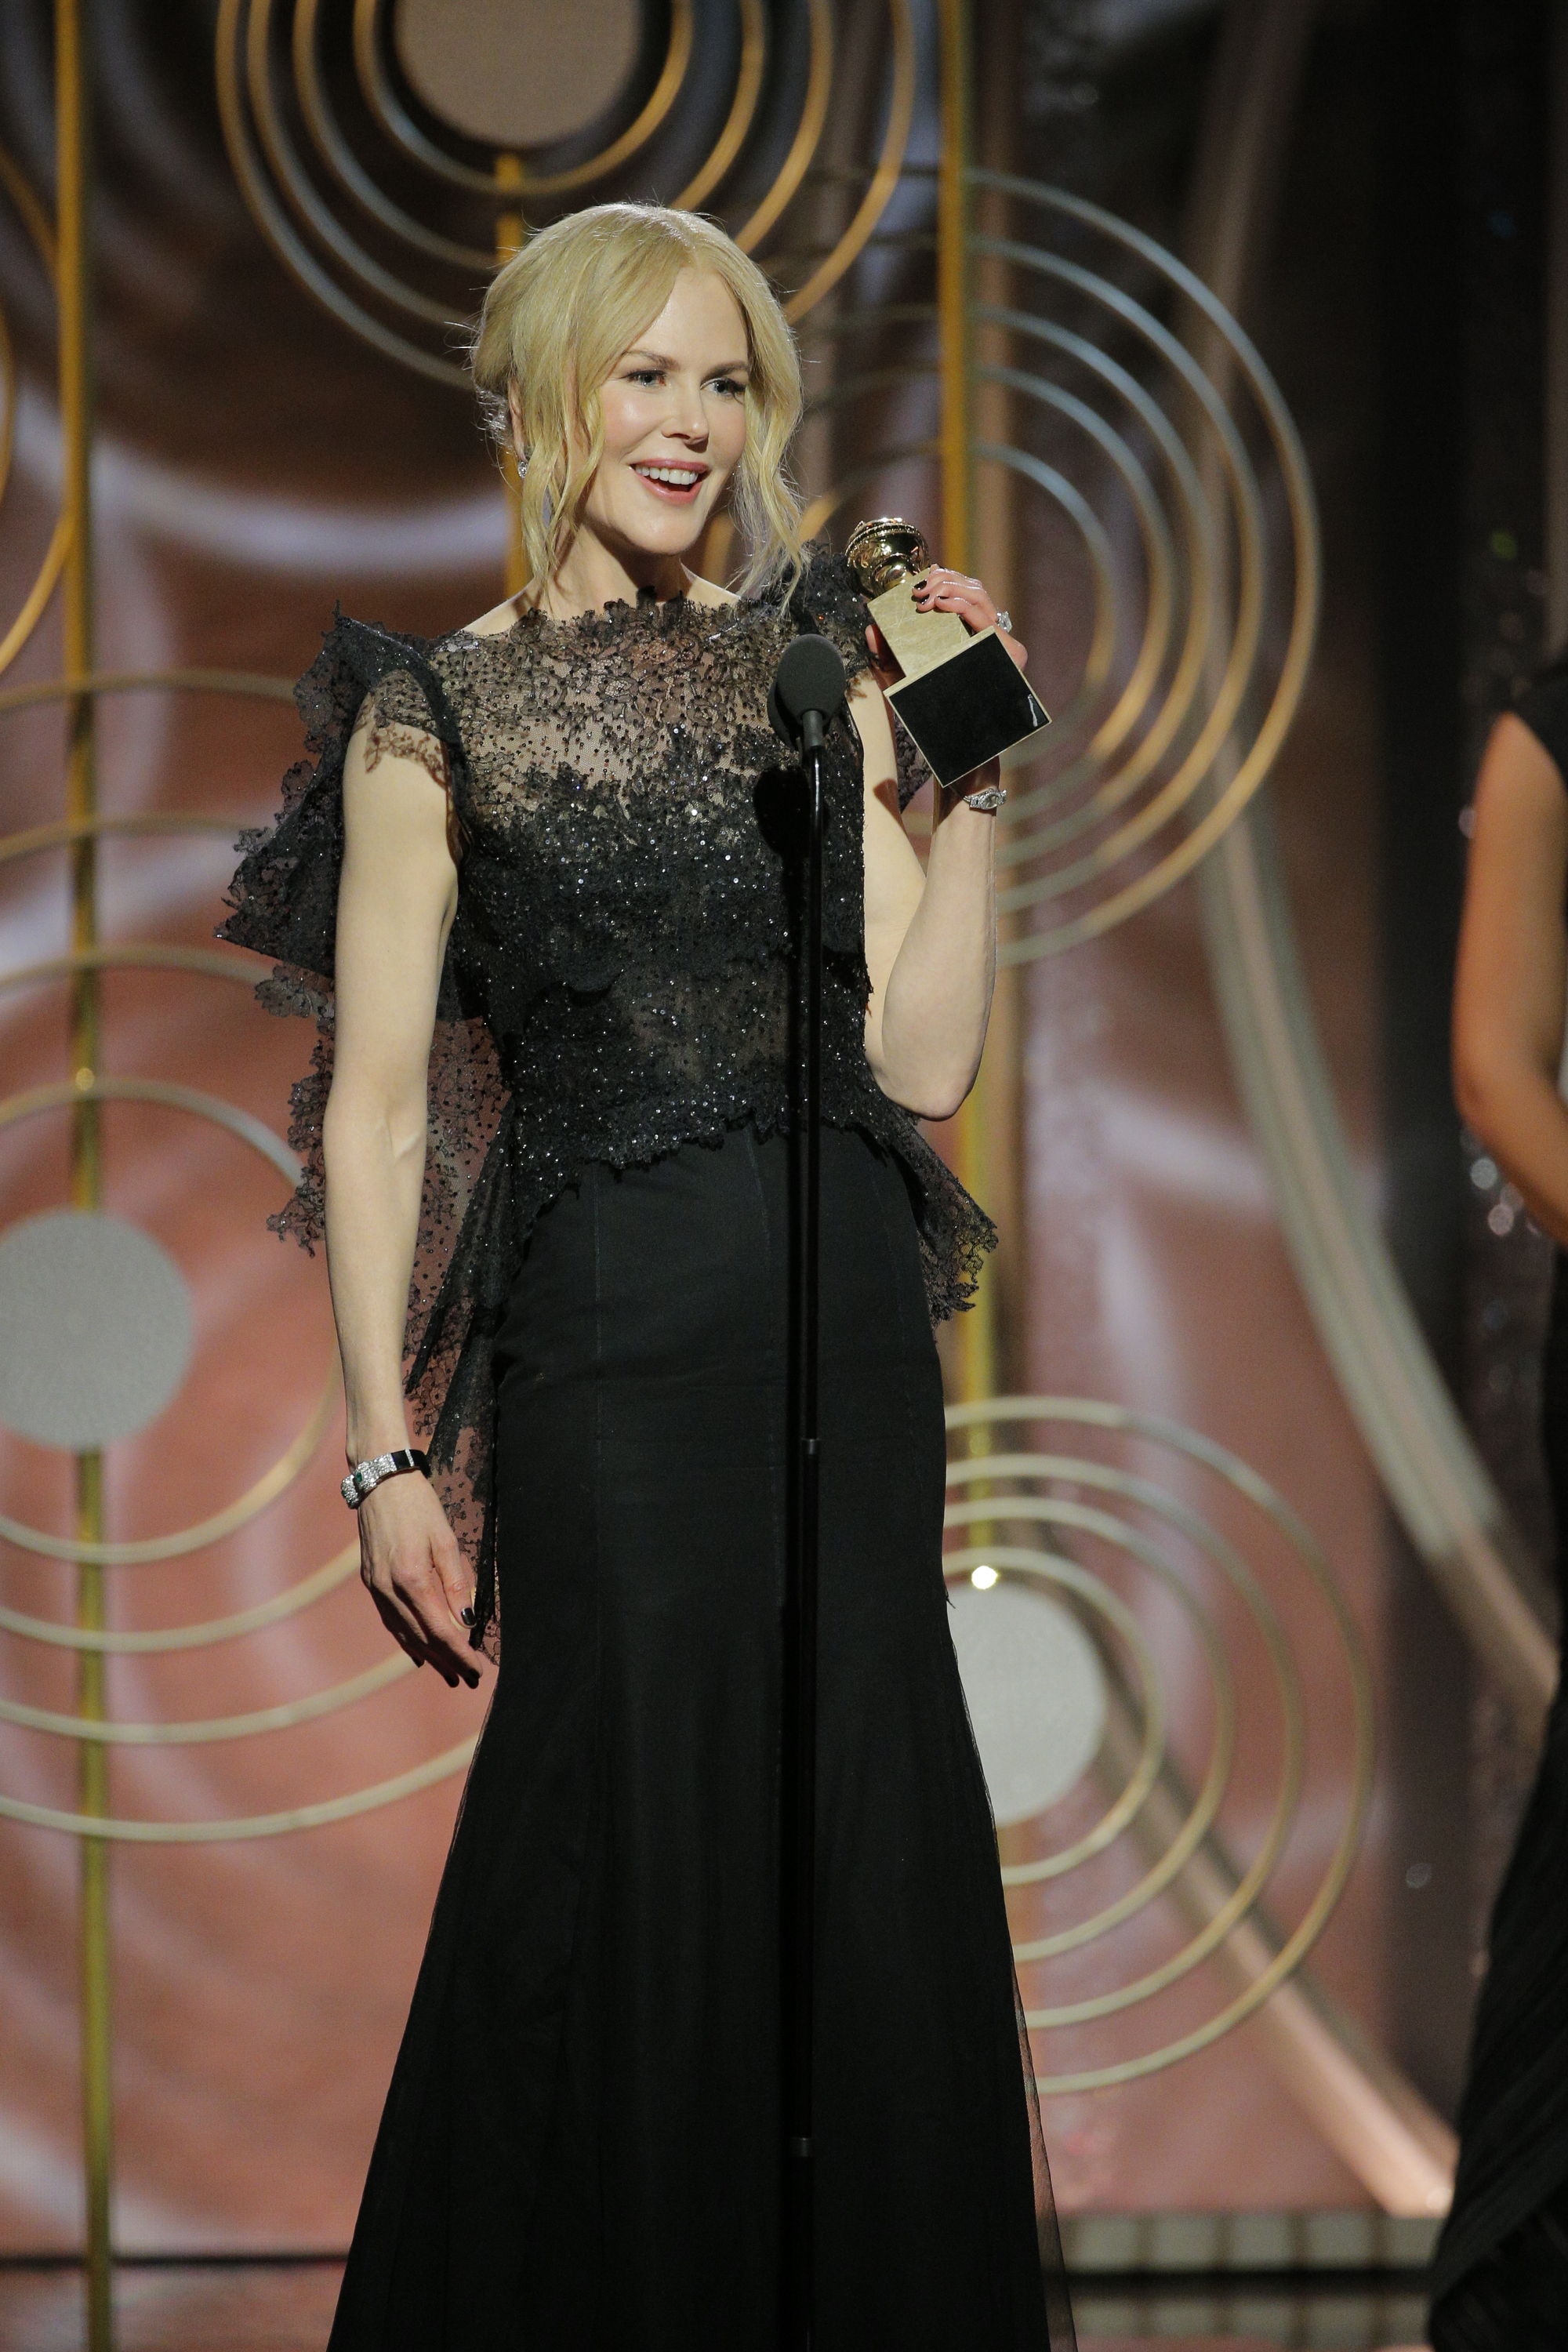 In this handout photo provided by NBCUniversal, Nicole Kidman accepts the award for Best Performance by an Actress in a Limited Series or Motion Picture Made for Television for 'Big Little Lies' speaks onstage during the 75th Annual Golden Globe Awards at The Beverly Hilton Hotel on January 7, 2018 in Beverly Hills, California.